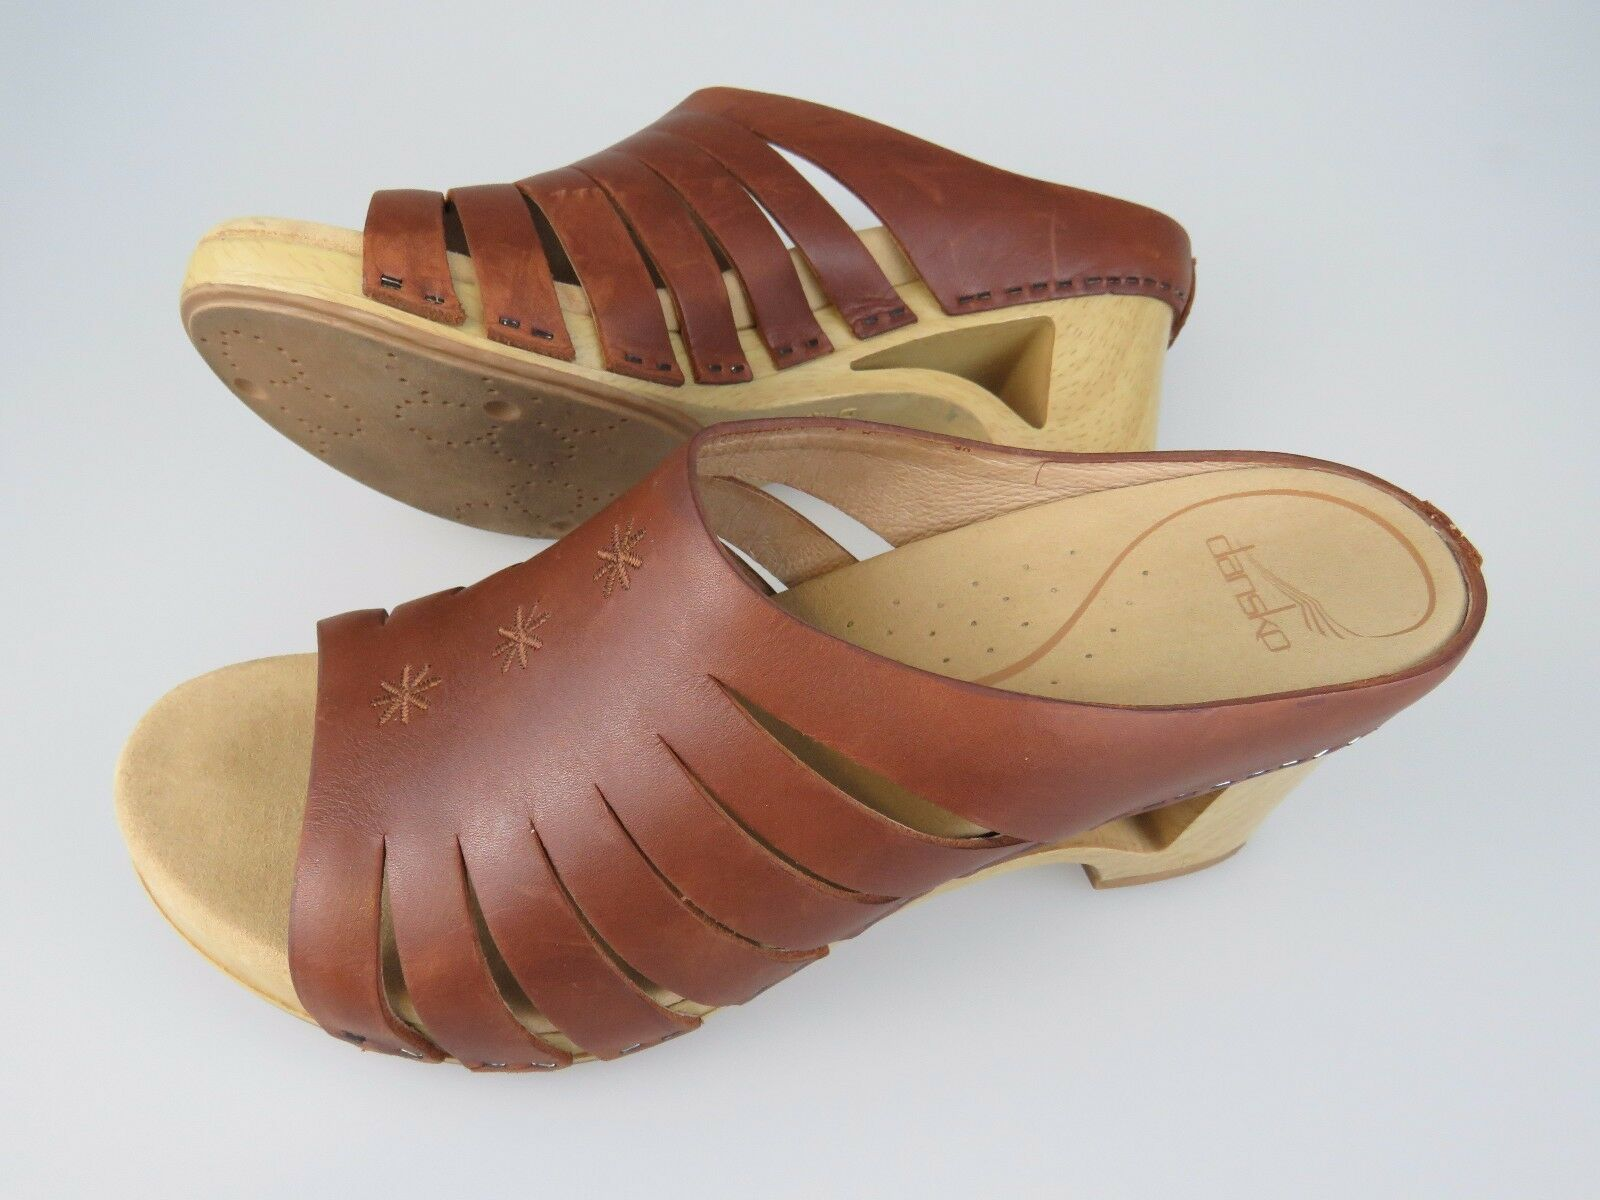 DANSKO Brown Leather Wooden Cut Out High Heels shoes Women's US 10.5